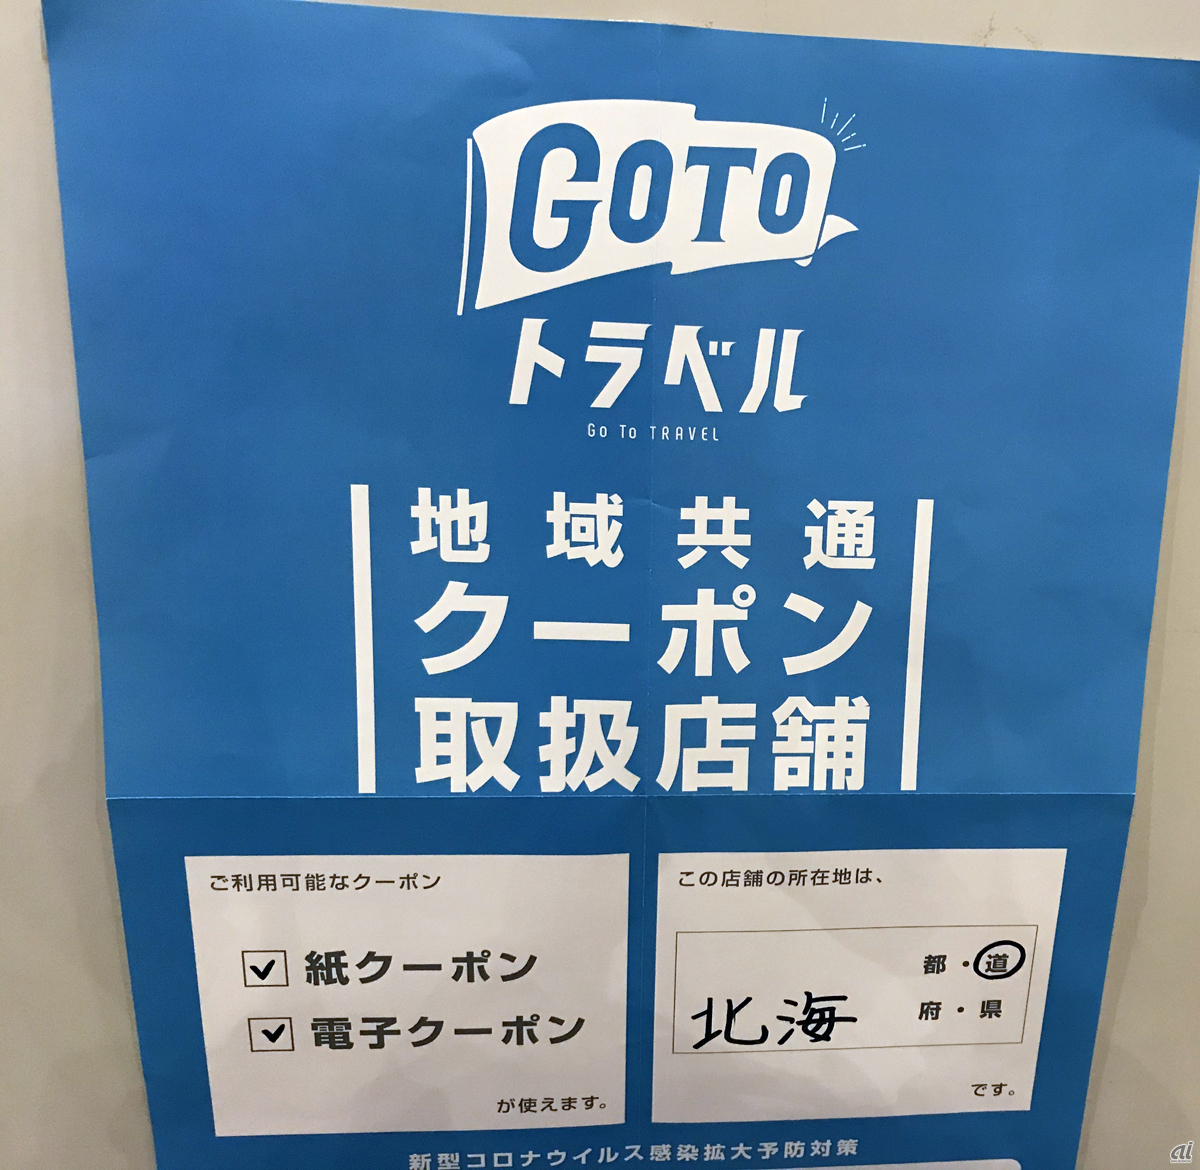 Go to クーポン もらい 方